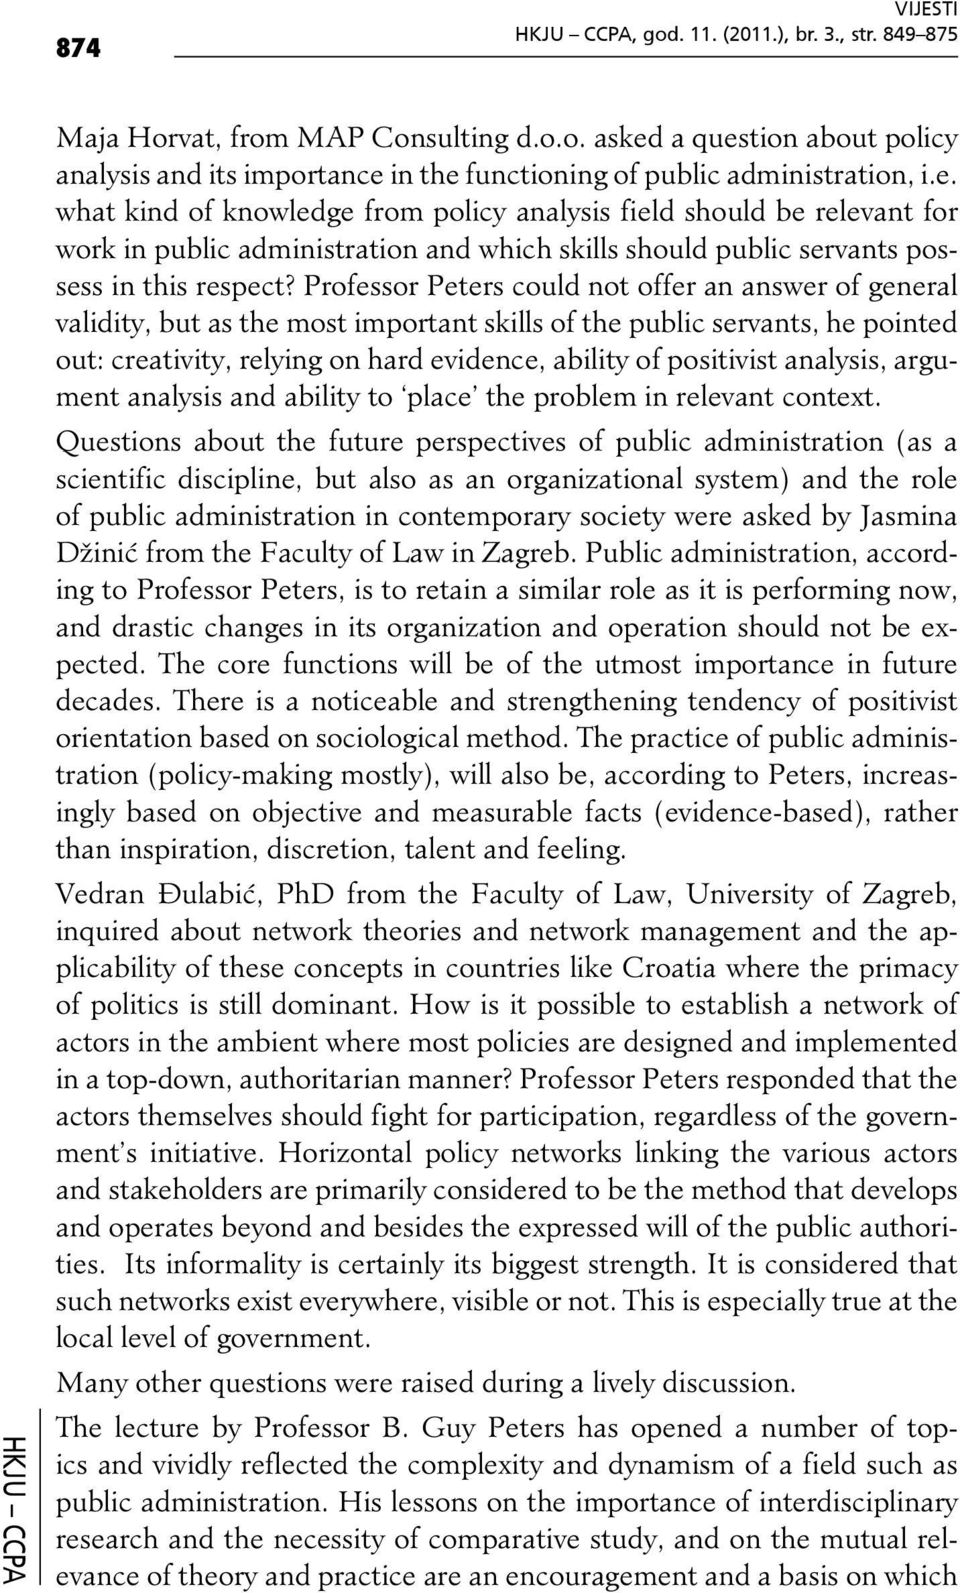 Professor Peters could not offer an answer of general validity, but as the most important skills of the public servants, he pointed out: creativity, relying on hard evidence, ability of positivist